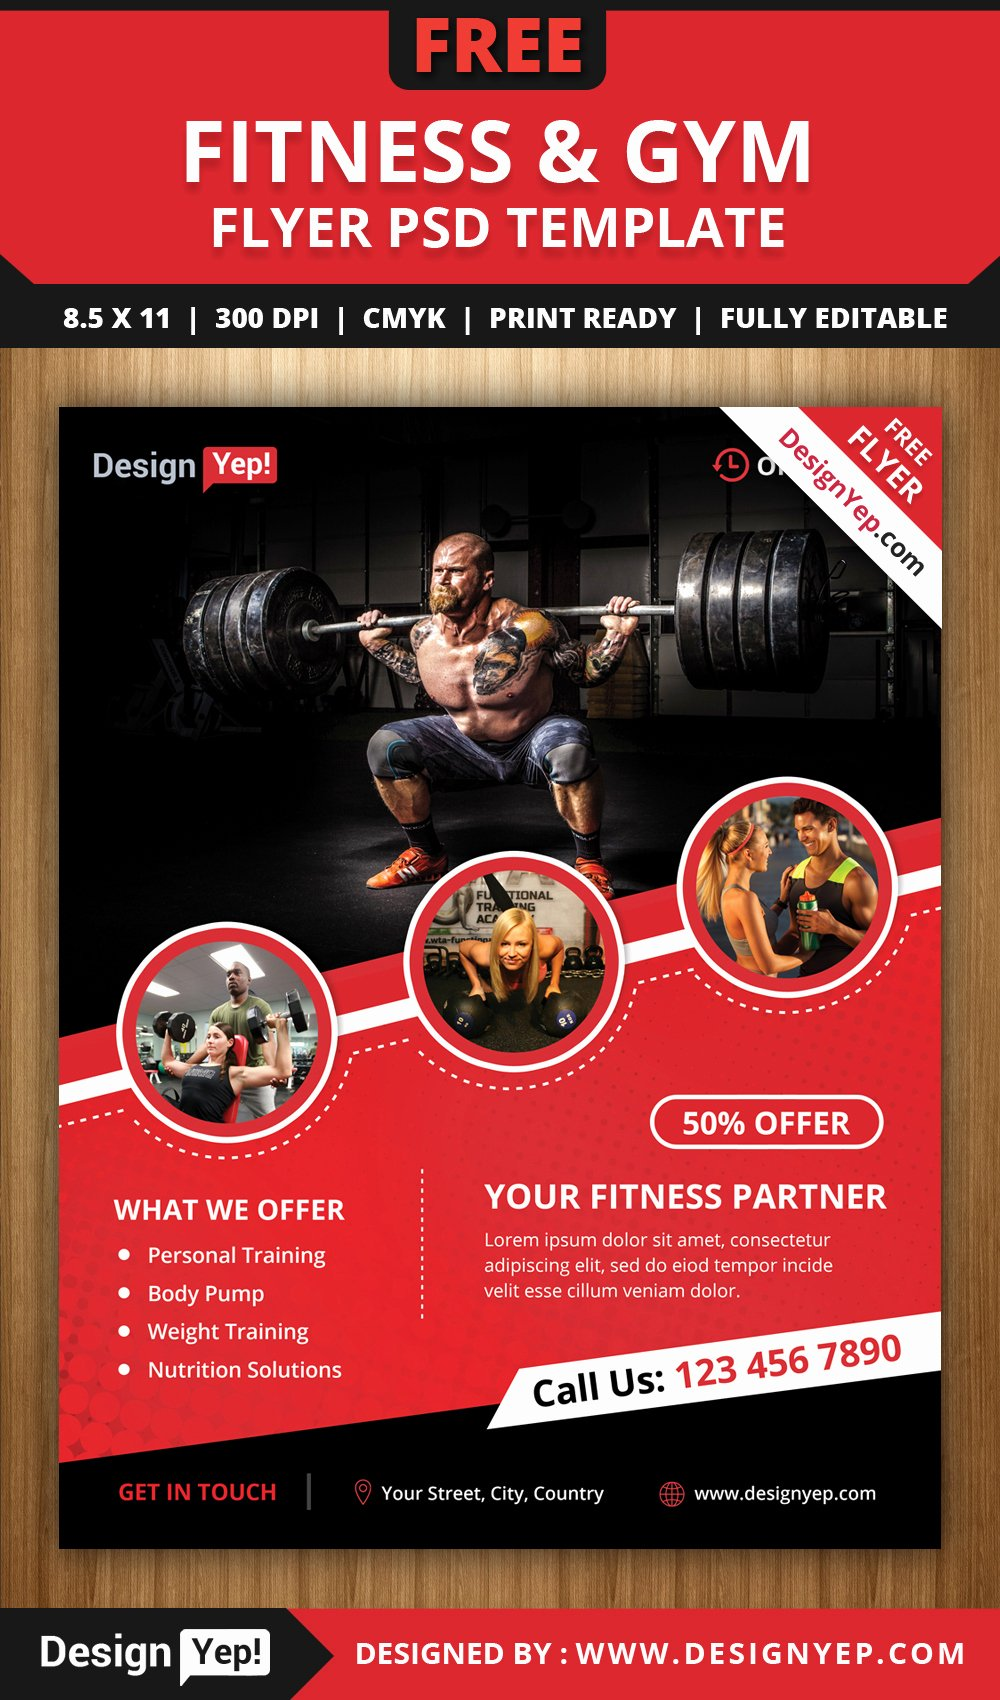 free fitness gym flyer psd template